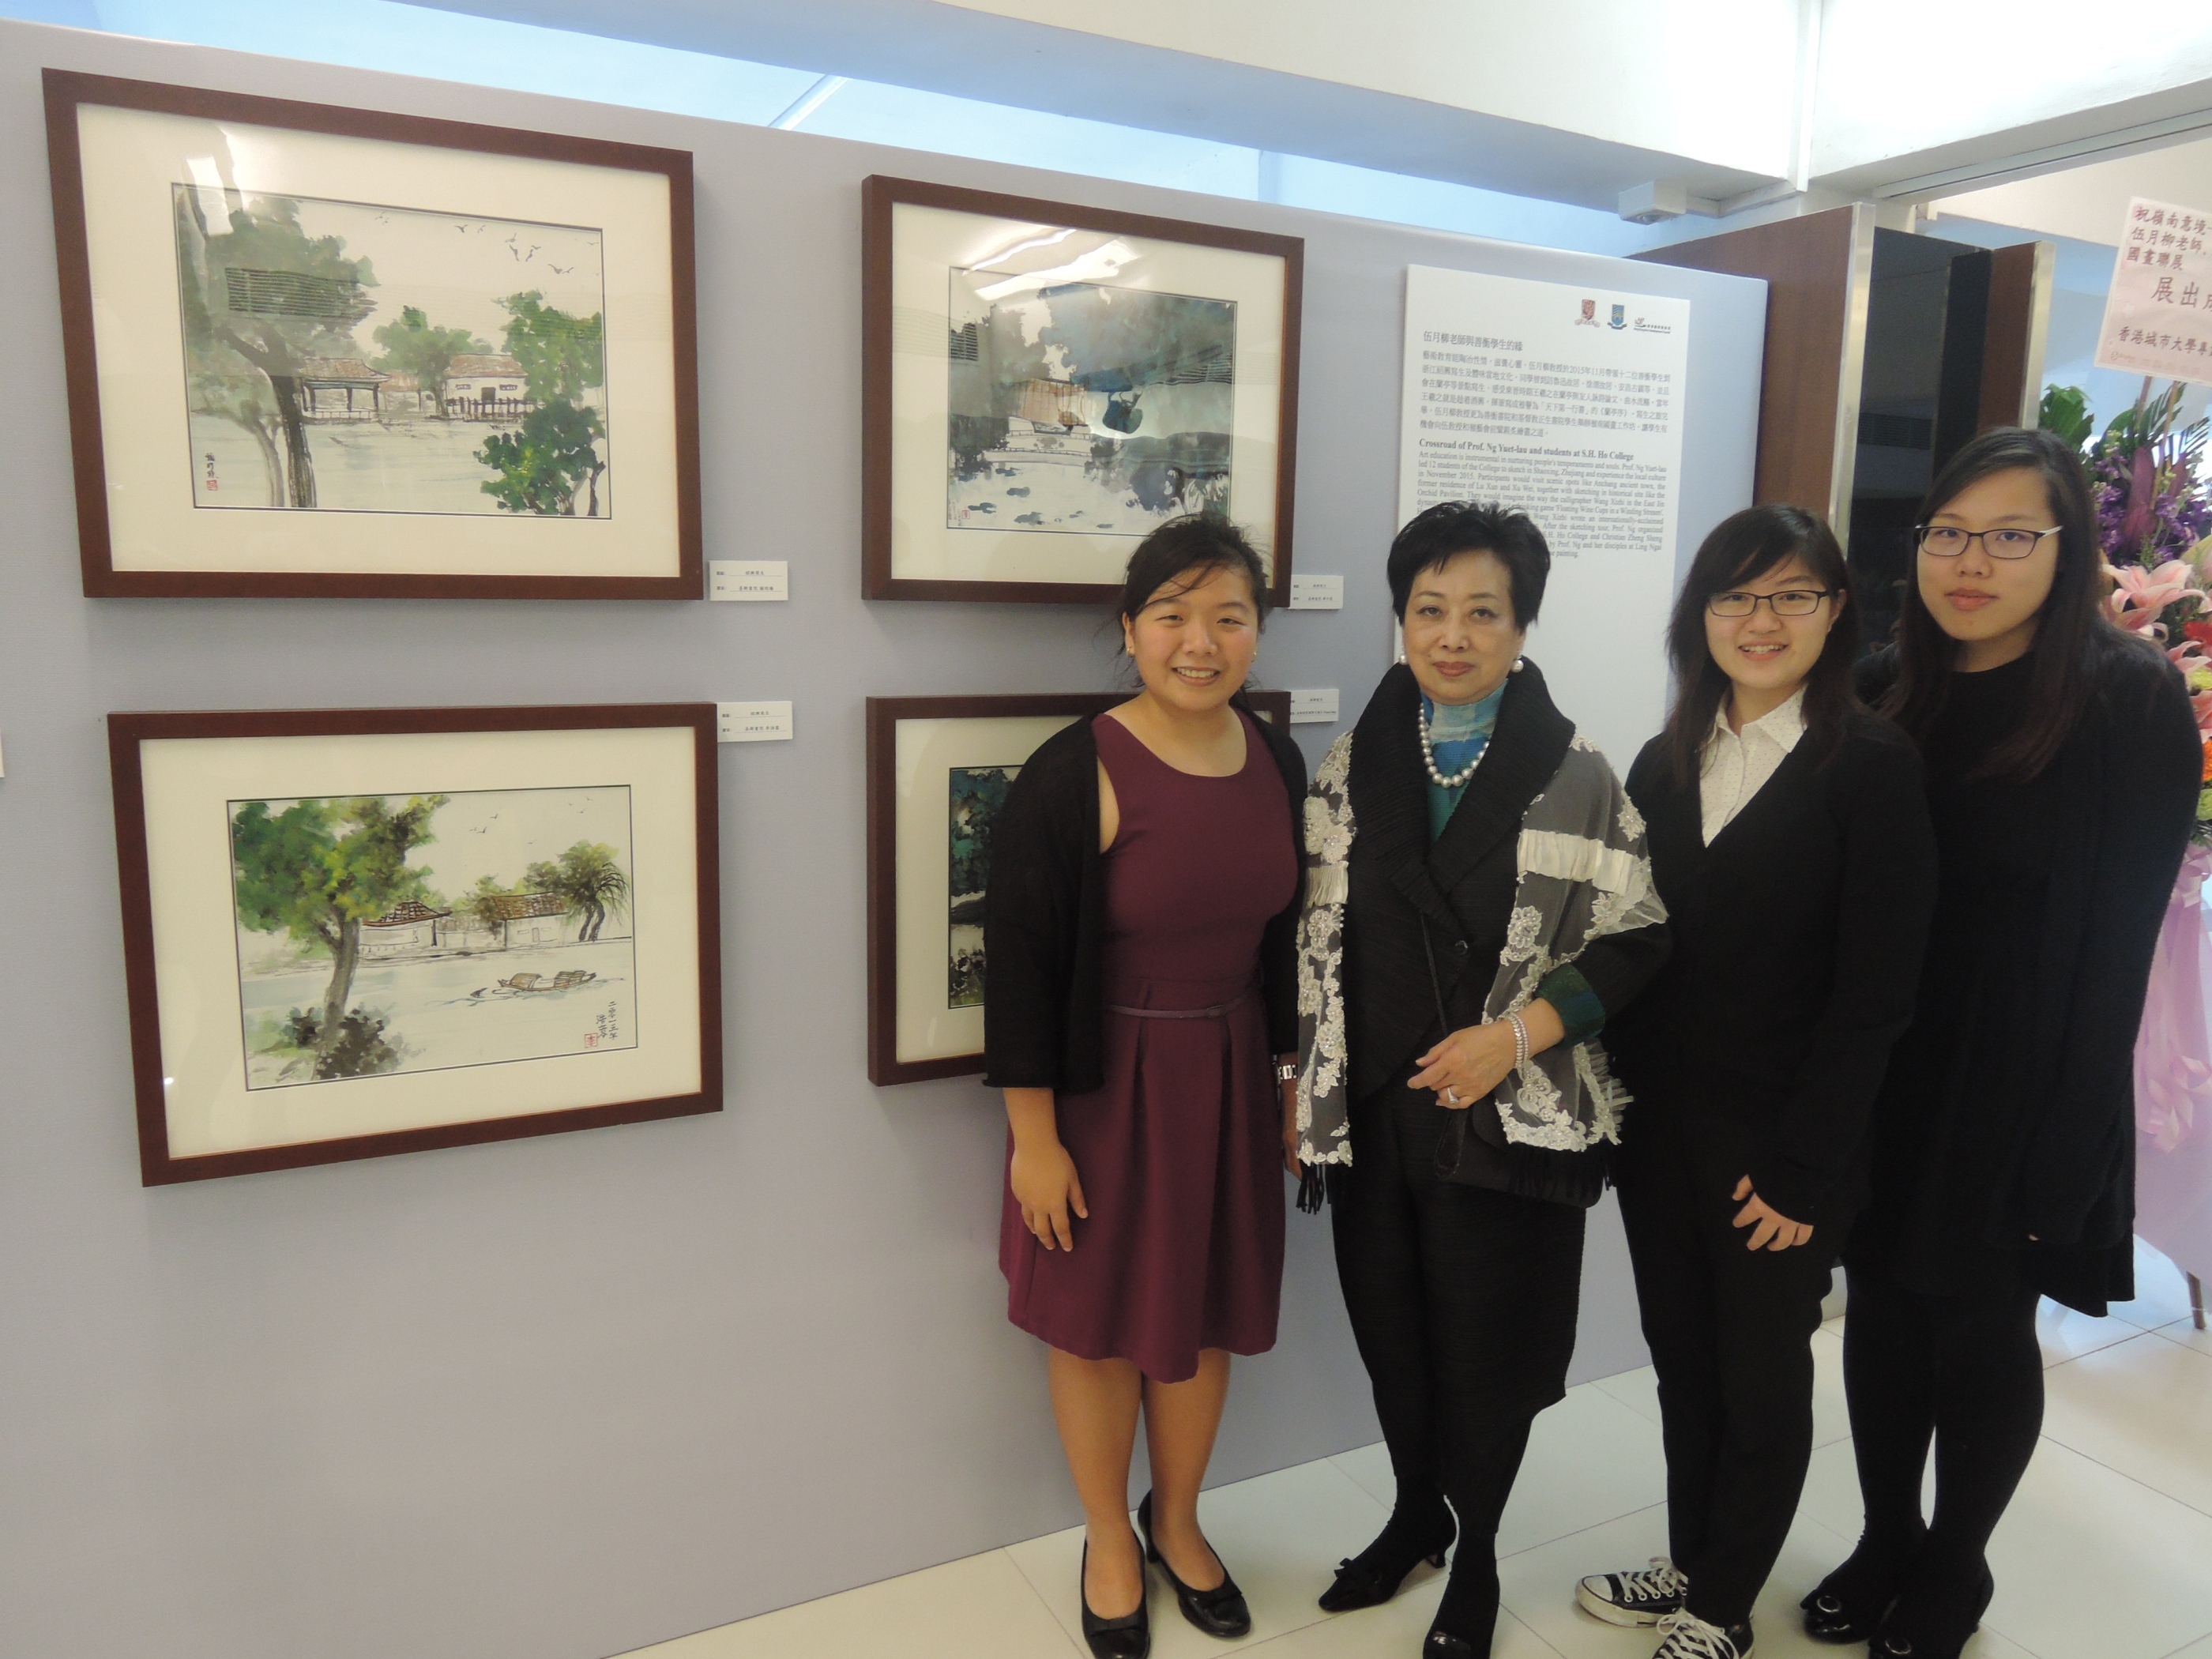 Prof Ng Yuet-lau led a group of College students to sketch at the historical Chinese city of Shaoxing to enhance students' aesthetic sense and painting skills. This photo is taken in front of the students' paintings.